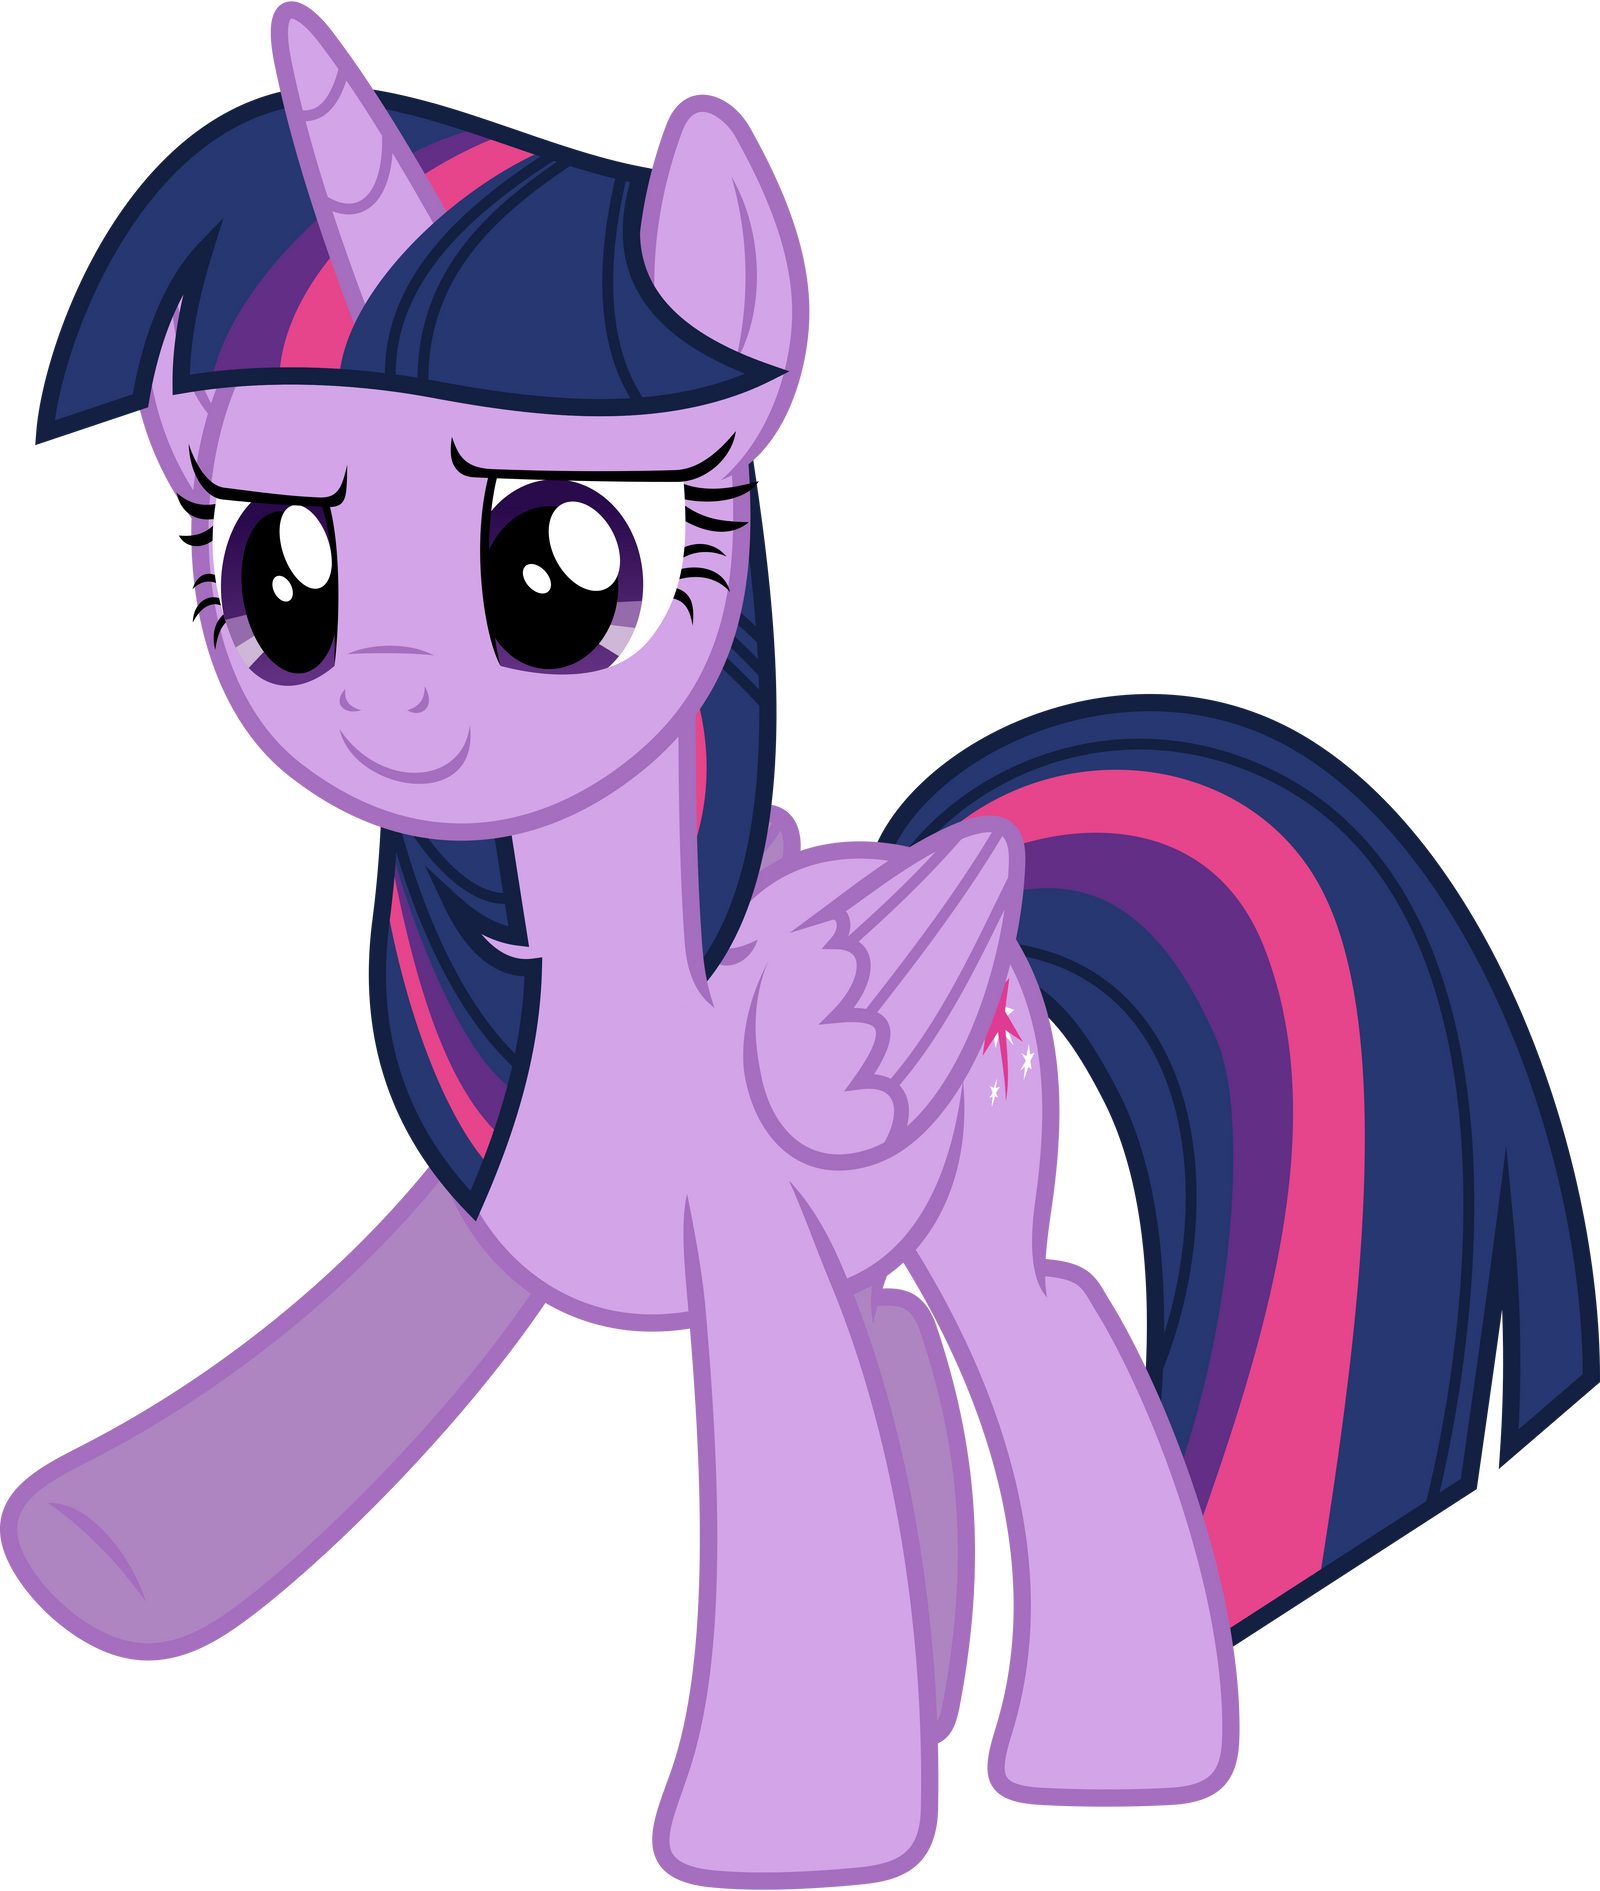 Determined Twilight Sparkle by 90Sigma on DeviantArt